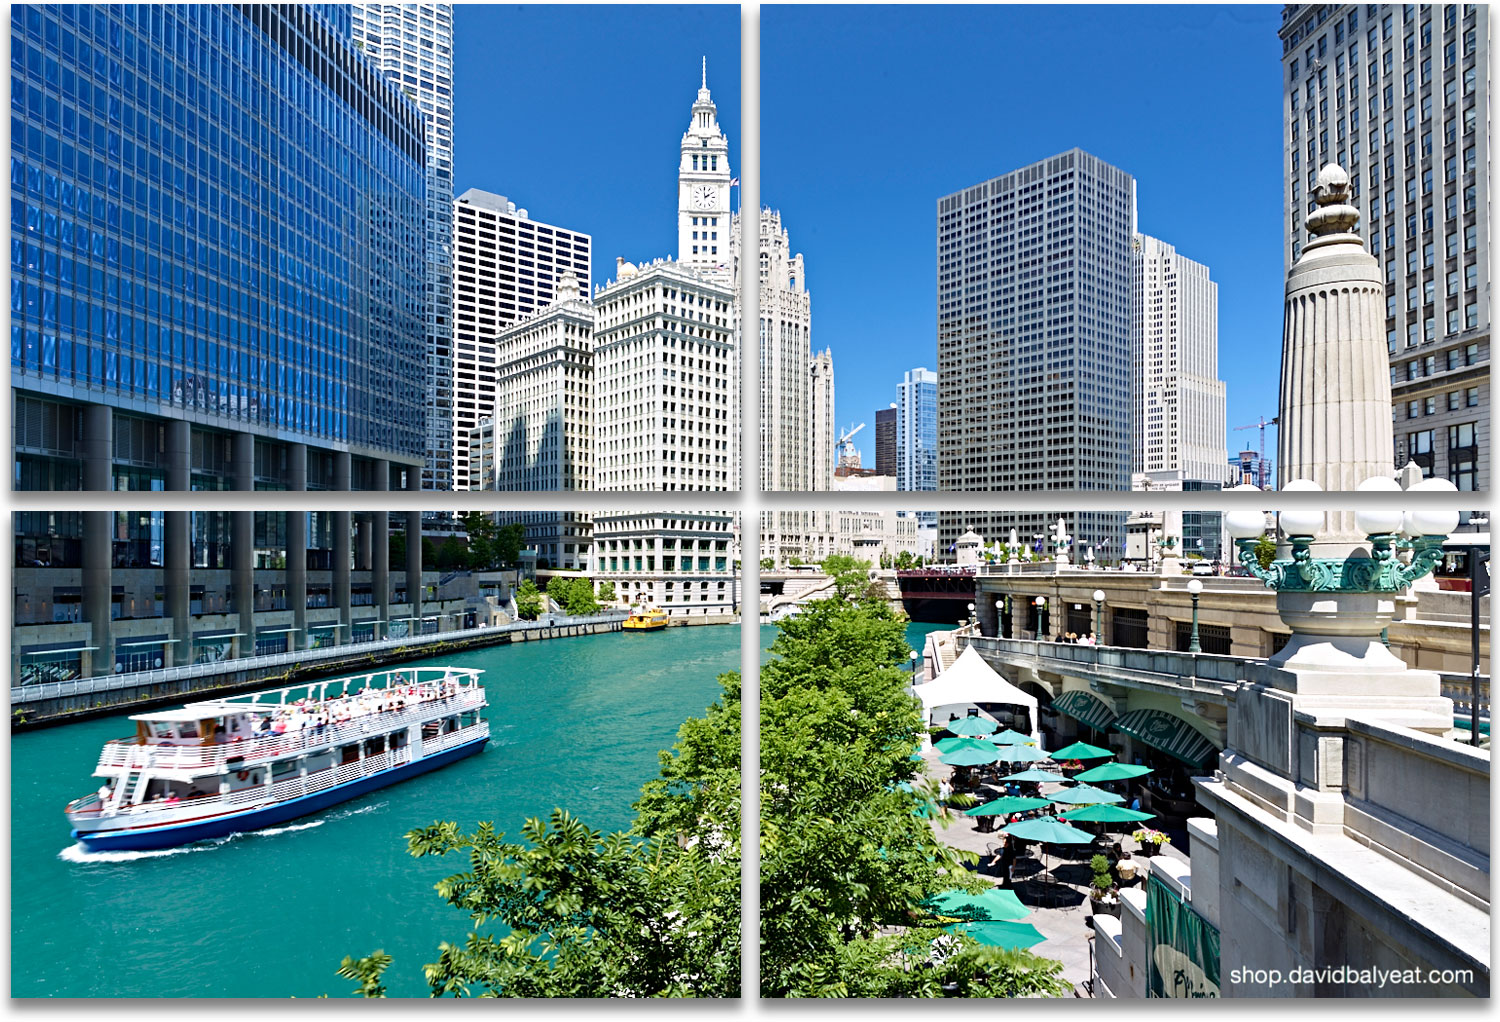 Chicago Riverwalk ferry boat patio diners high-definition HD professional cityscape photography